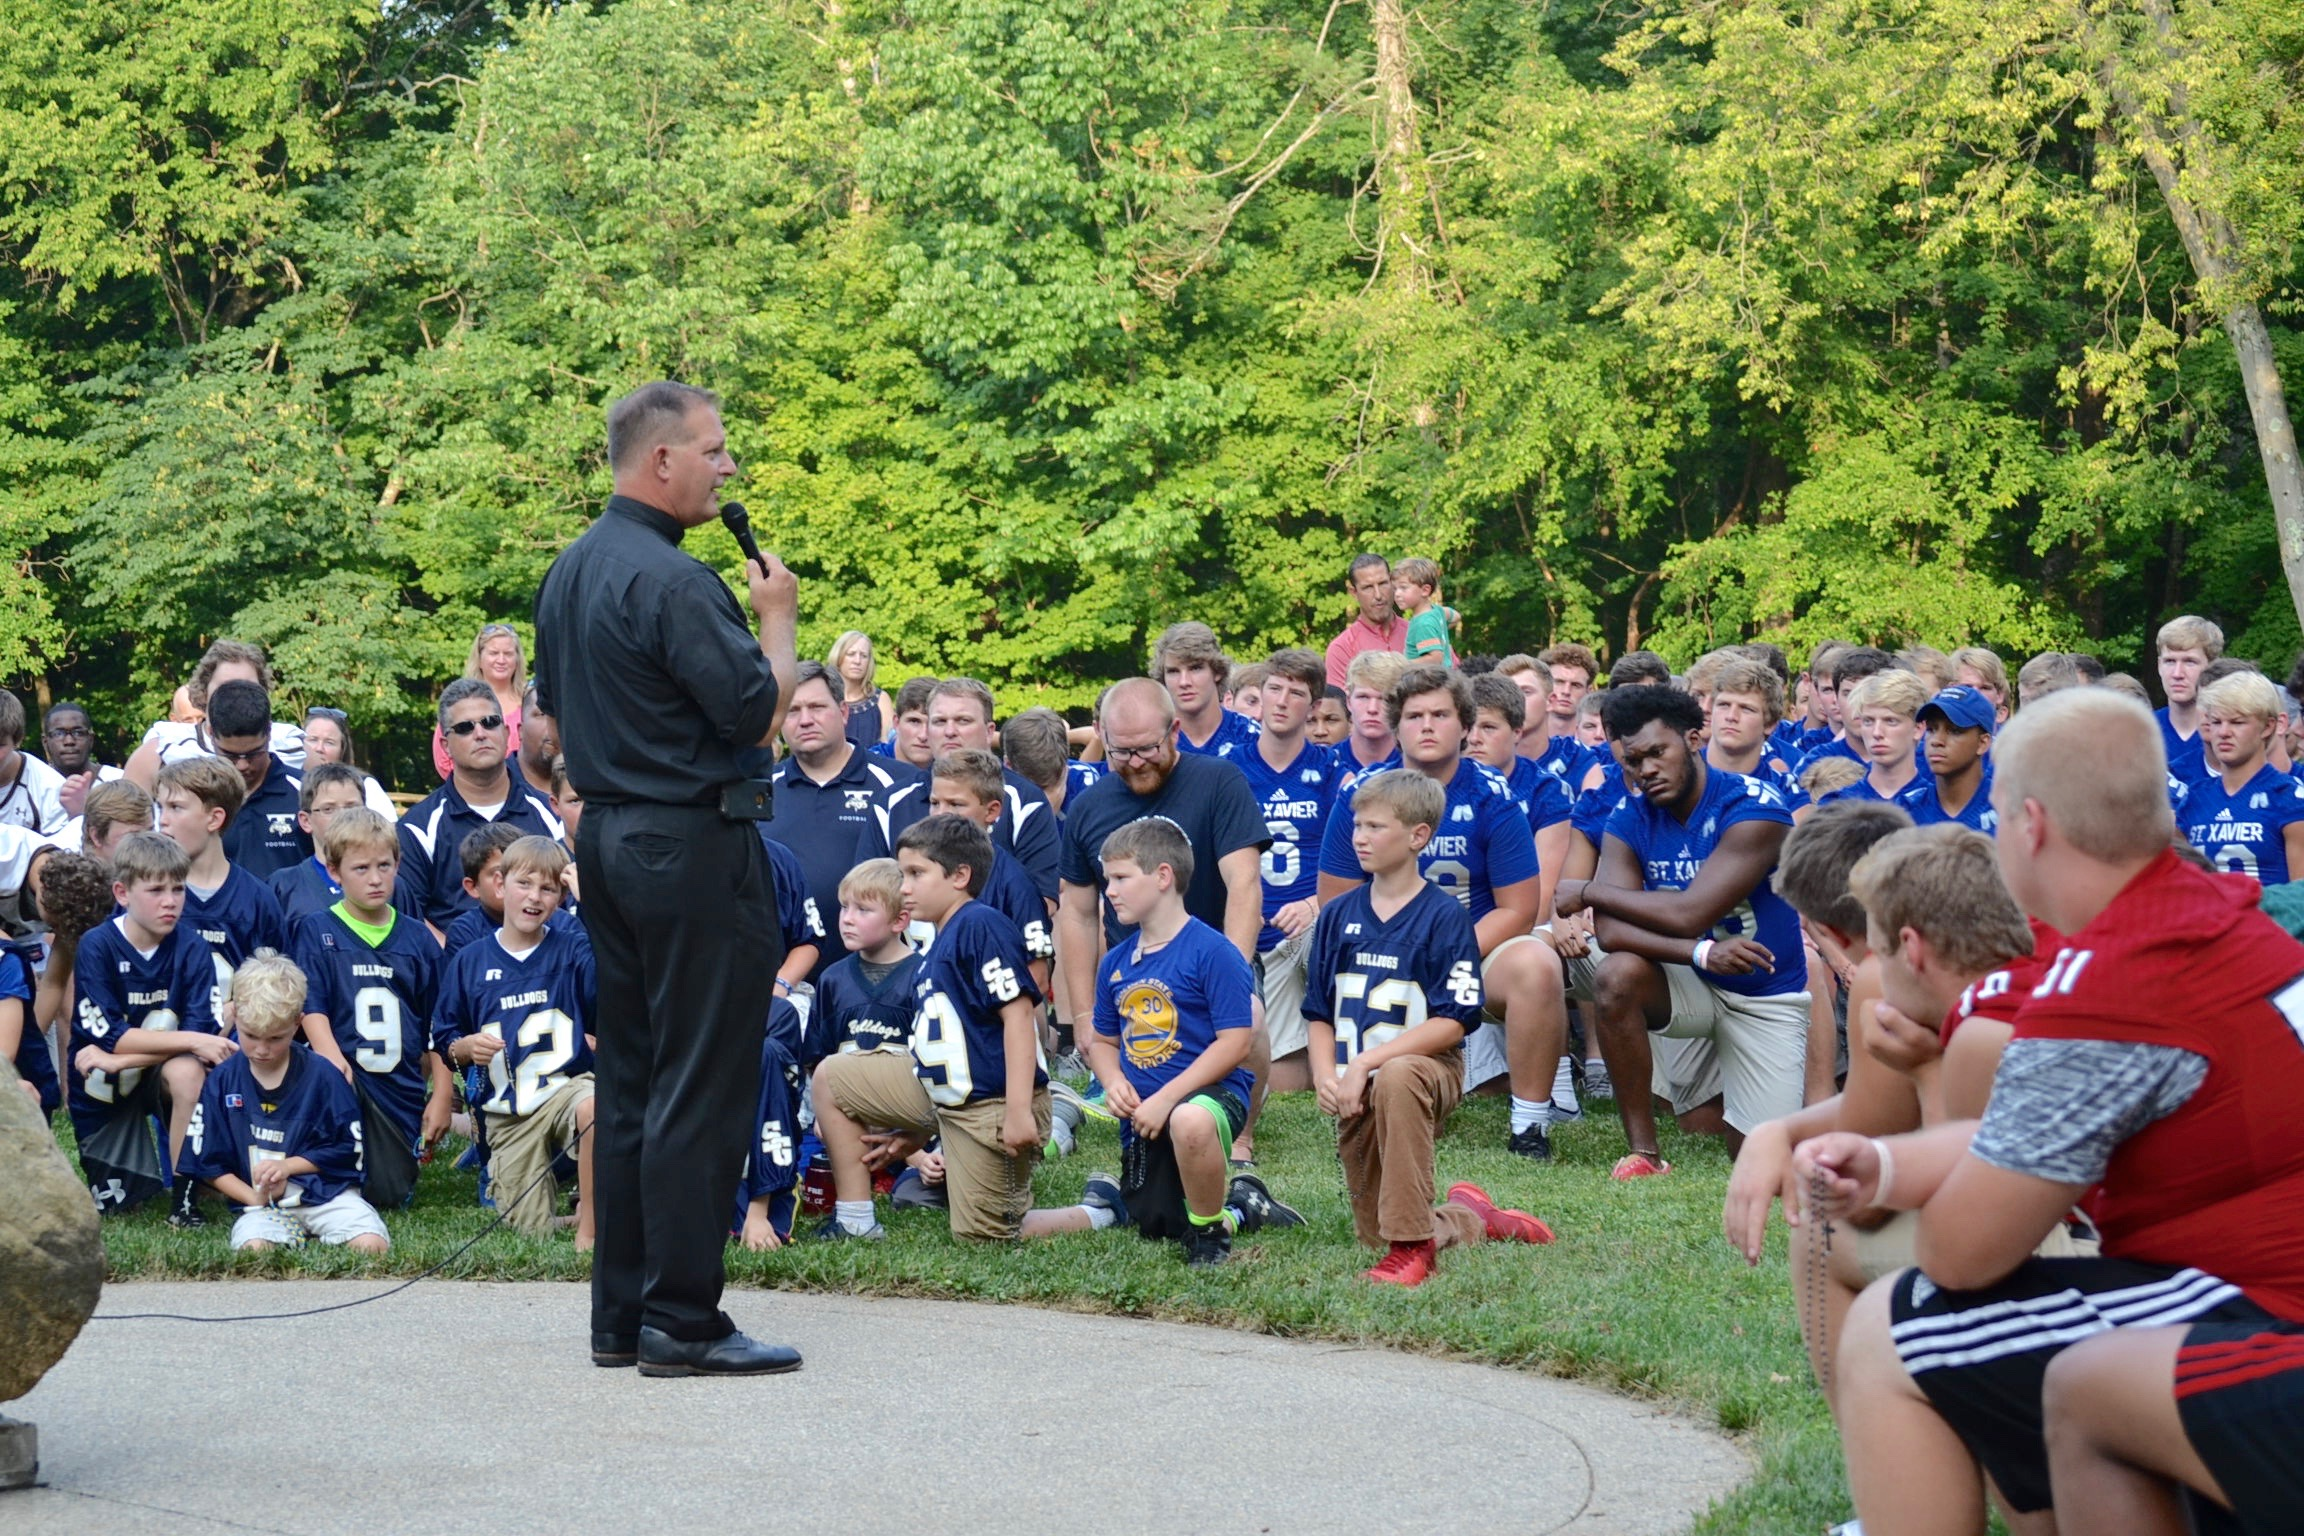 Father Brausch addresses the players. (CT Photo/Gail Finke)